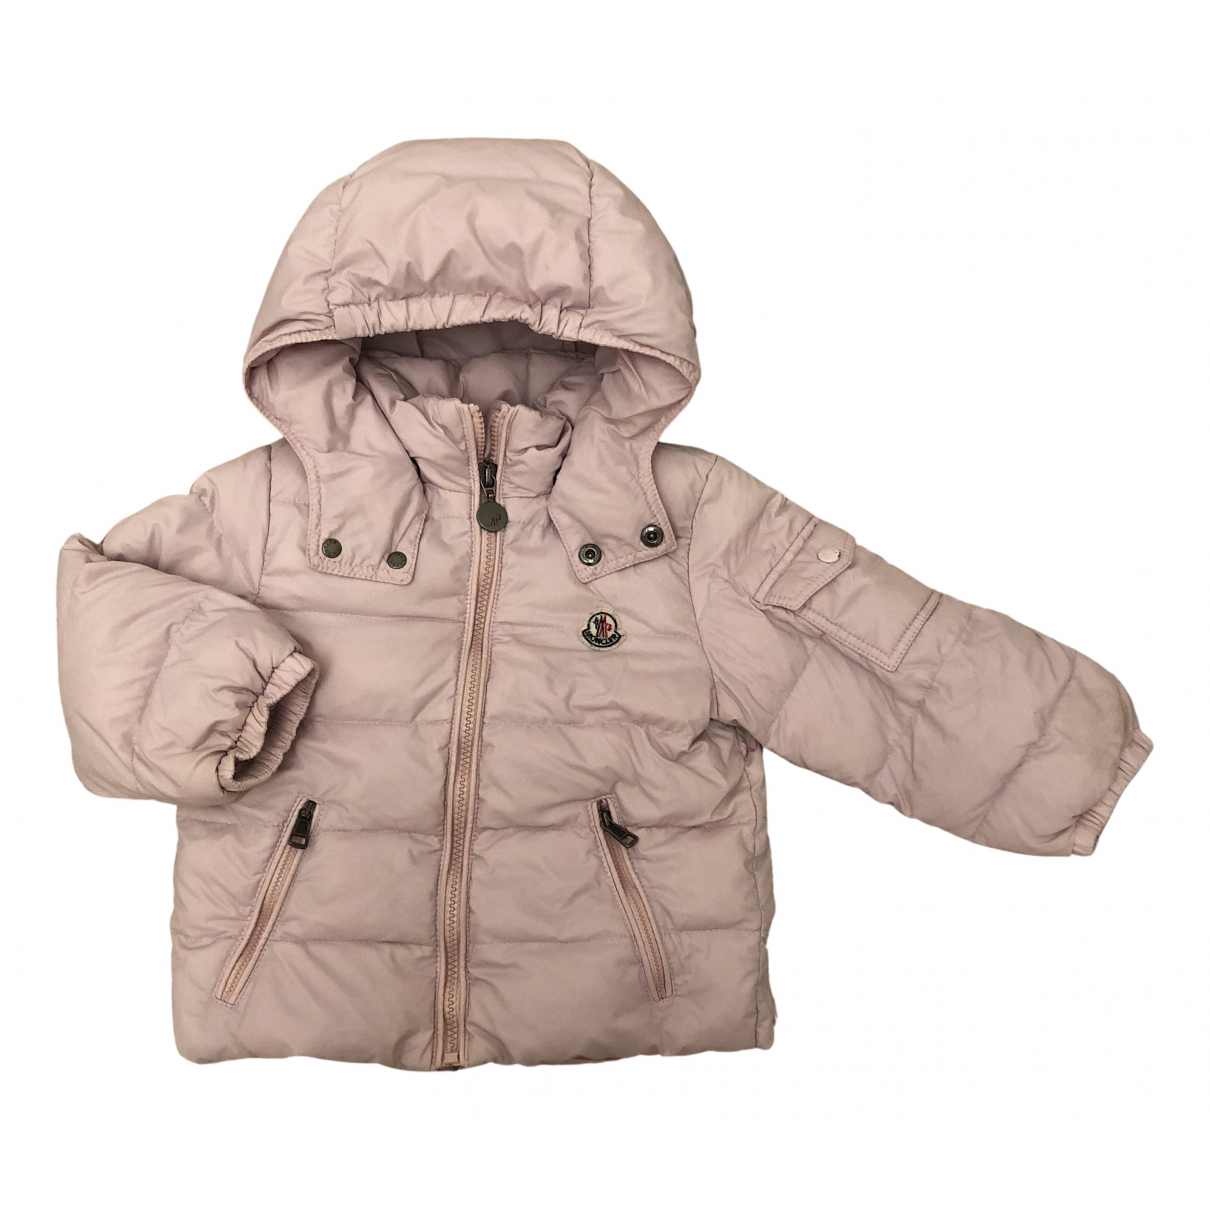 Moncler Classic Jacke, Maentel in  Rosa Polyester